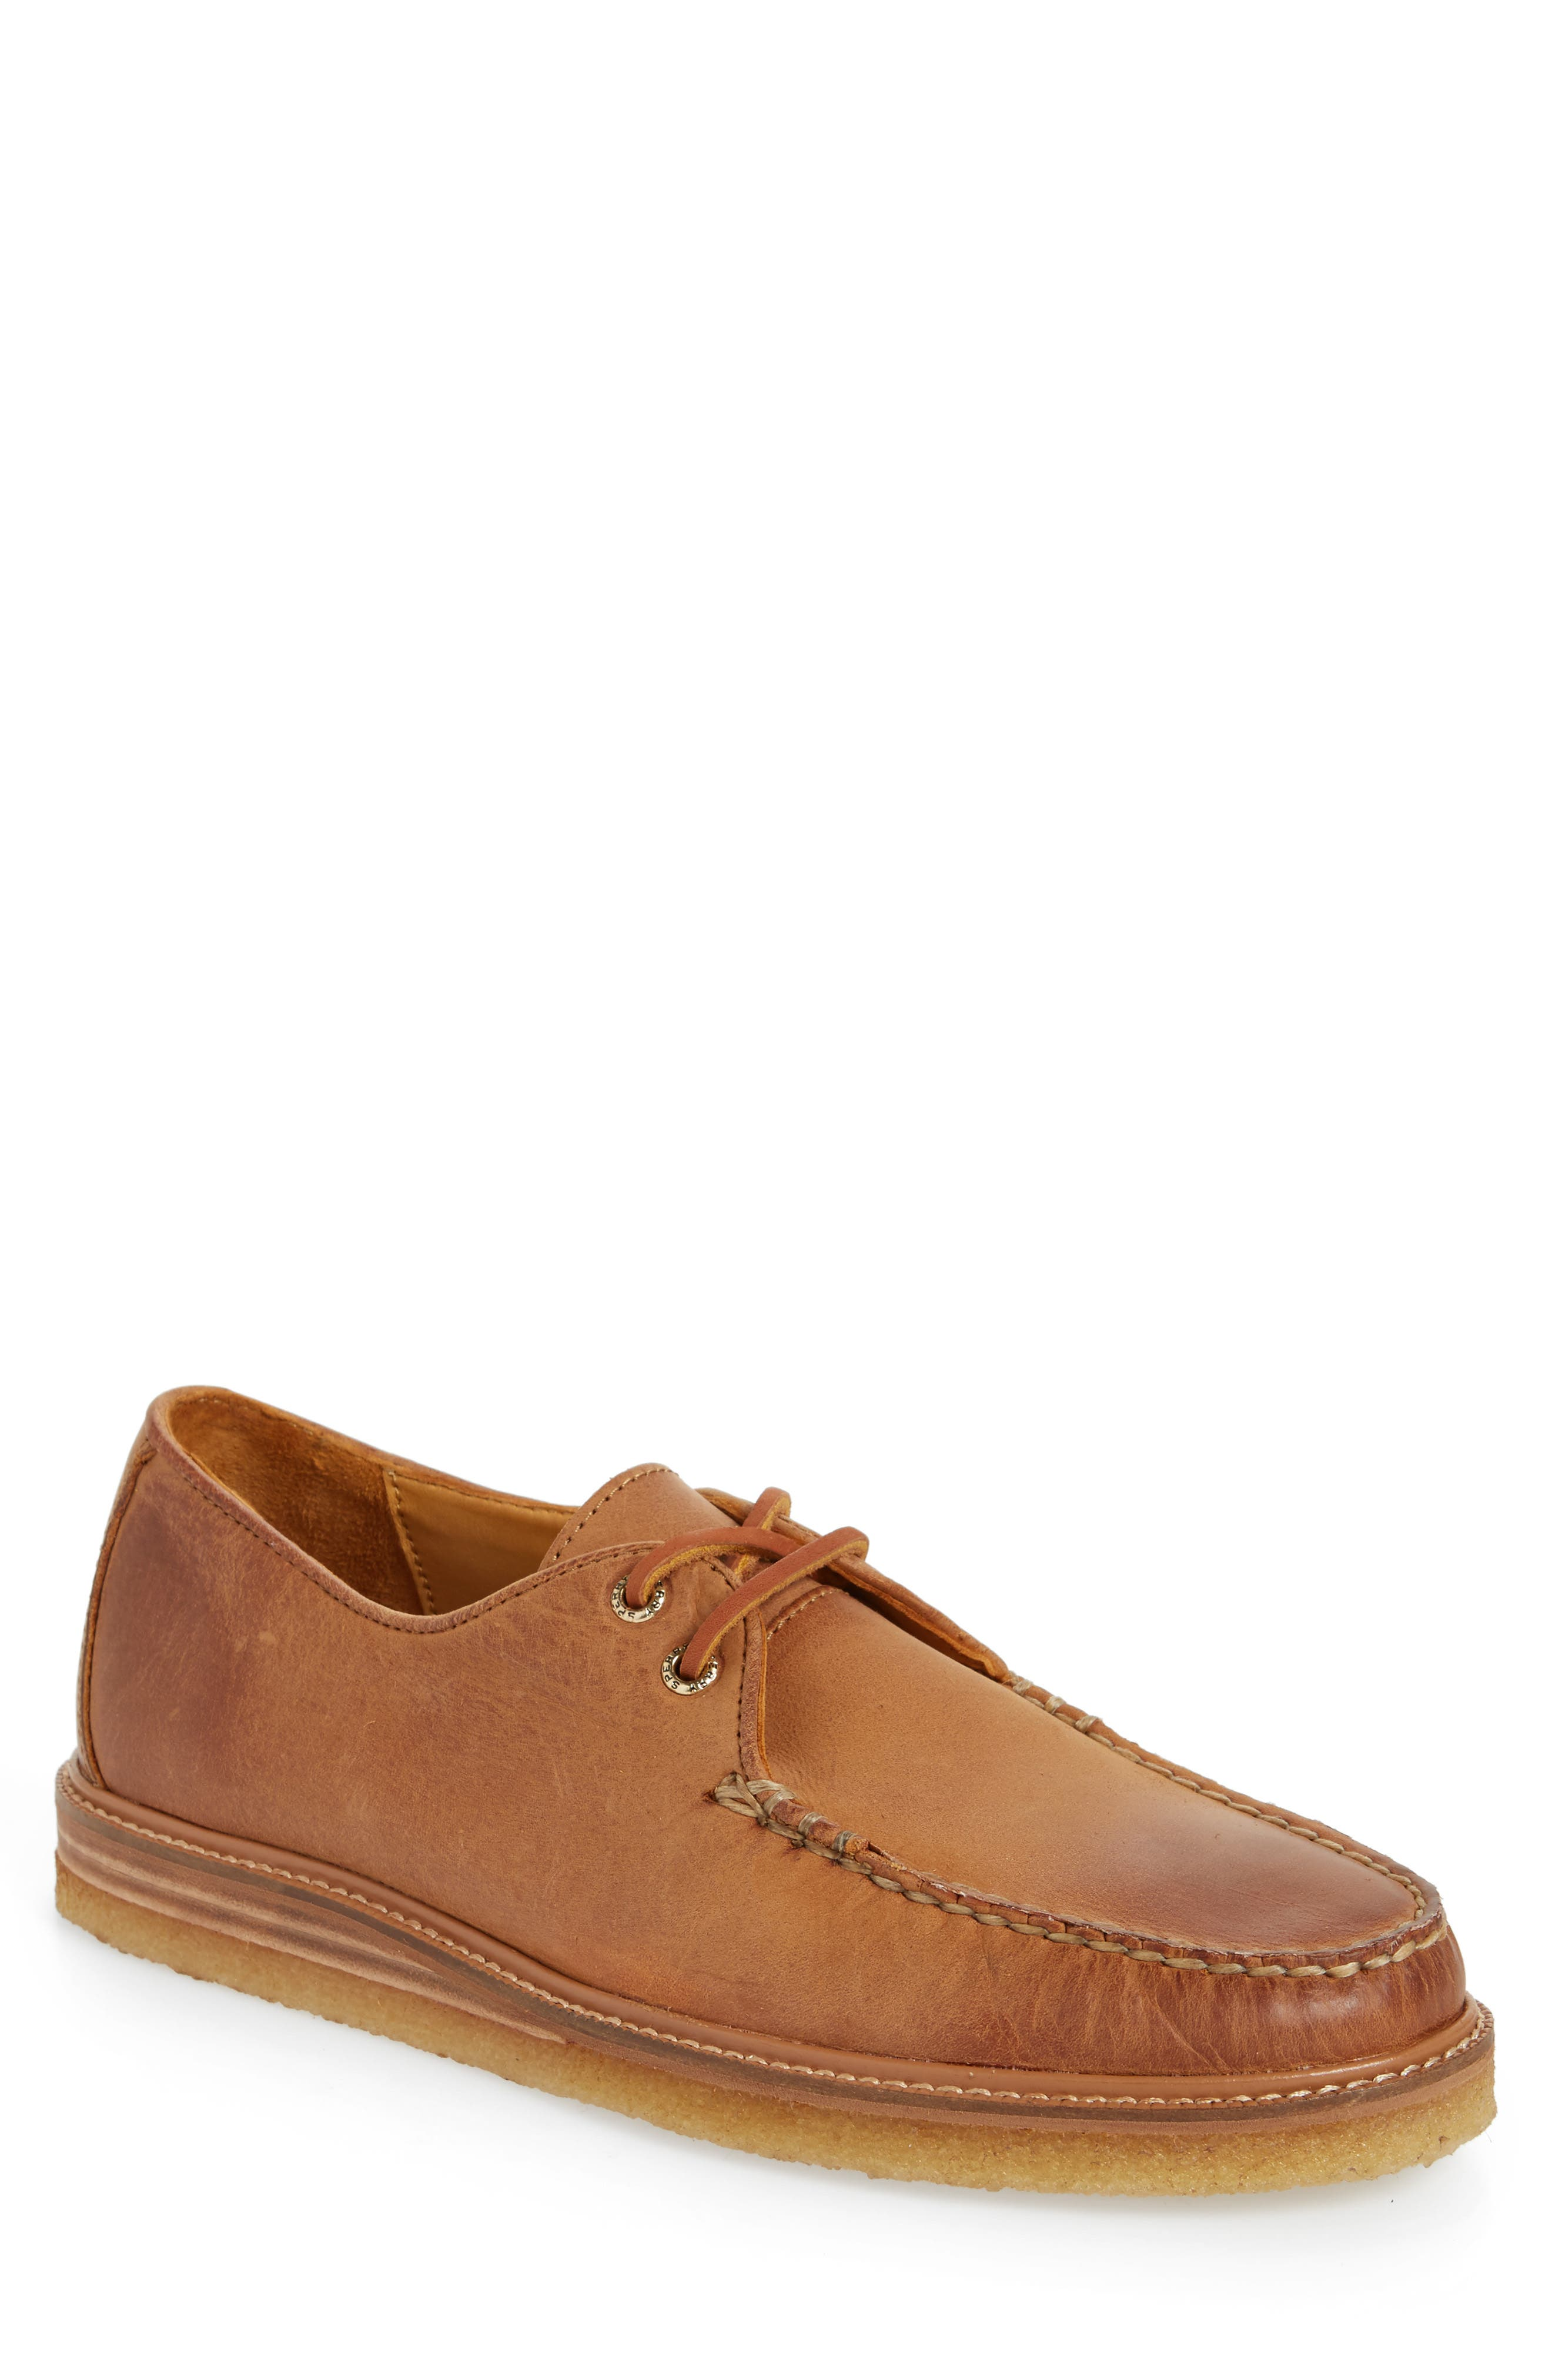 Gold Cup Captain's Crepe Sole Oxford,                         Main,                         color, Tan Leather